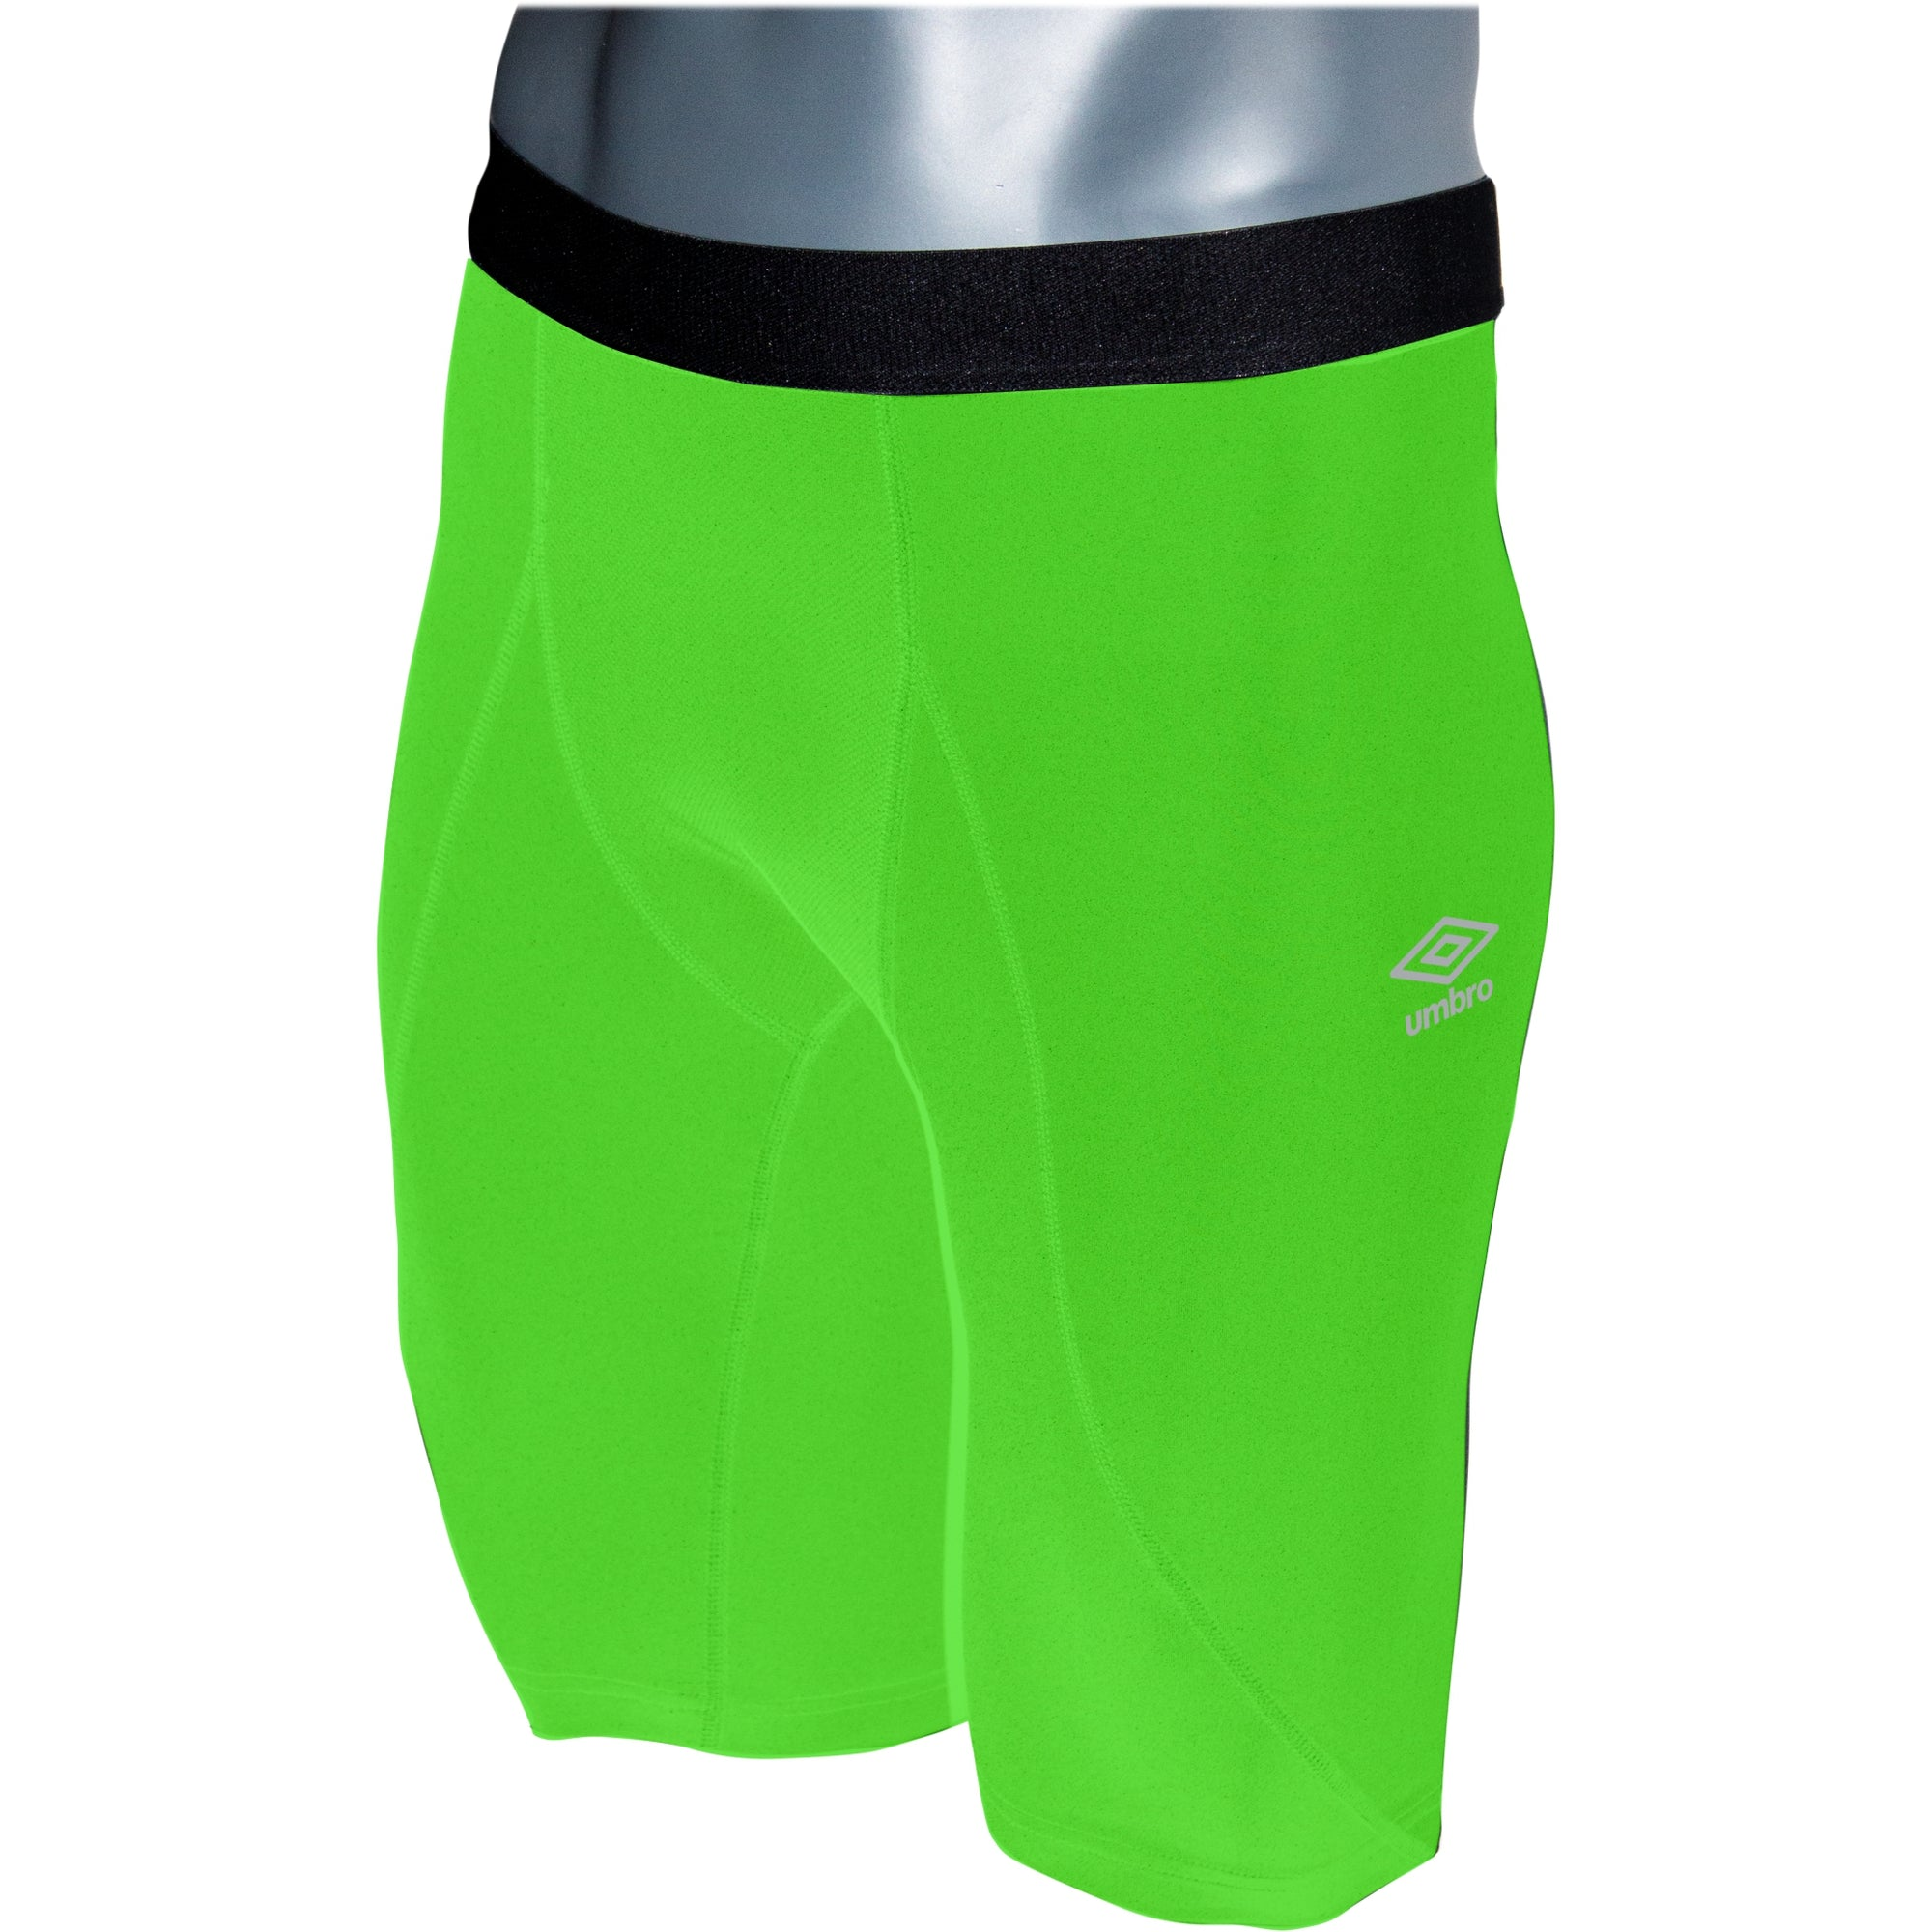 Umbro Elite Player Power Short in green gecko with black waist band